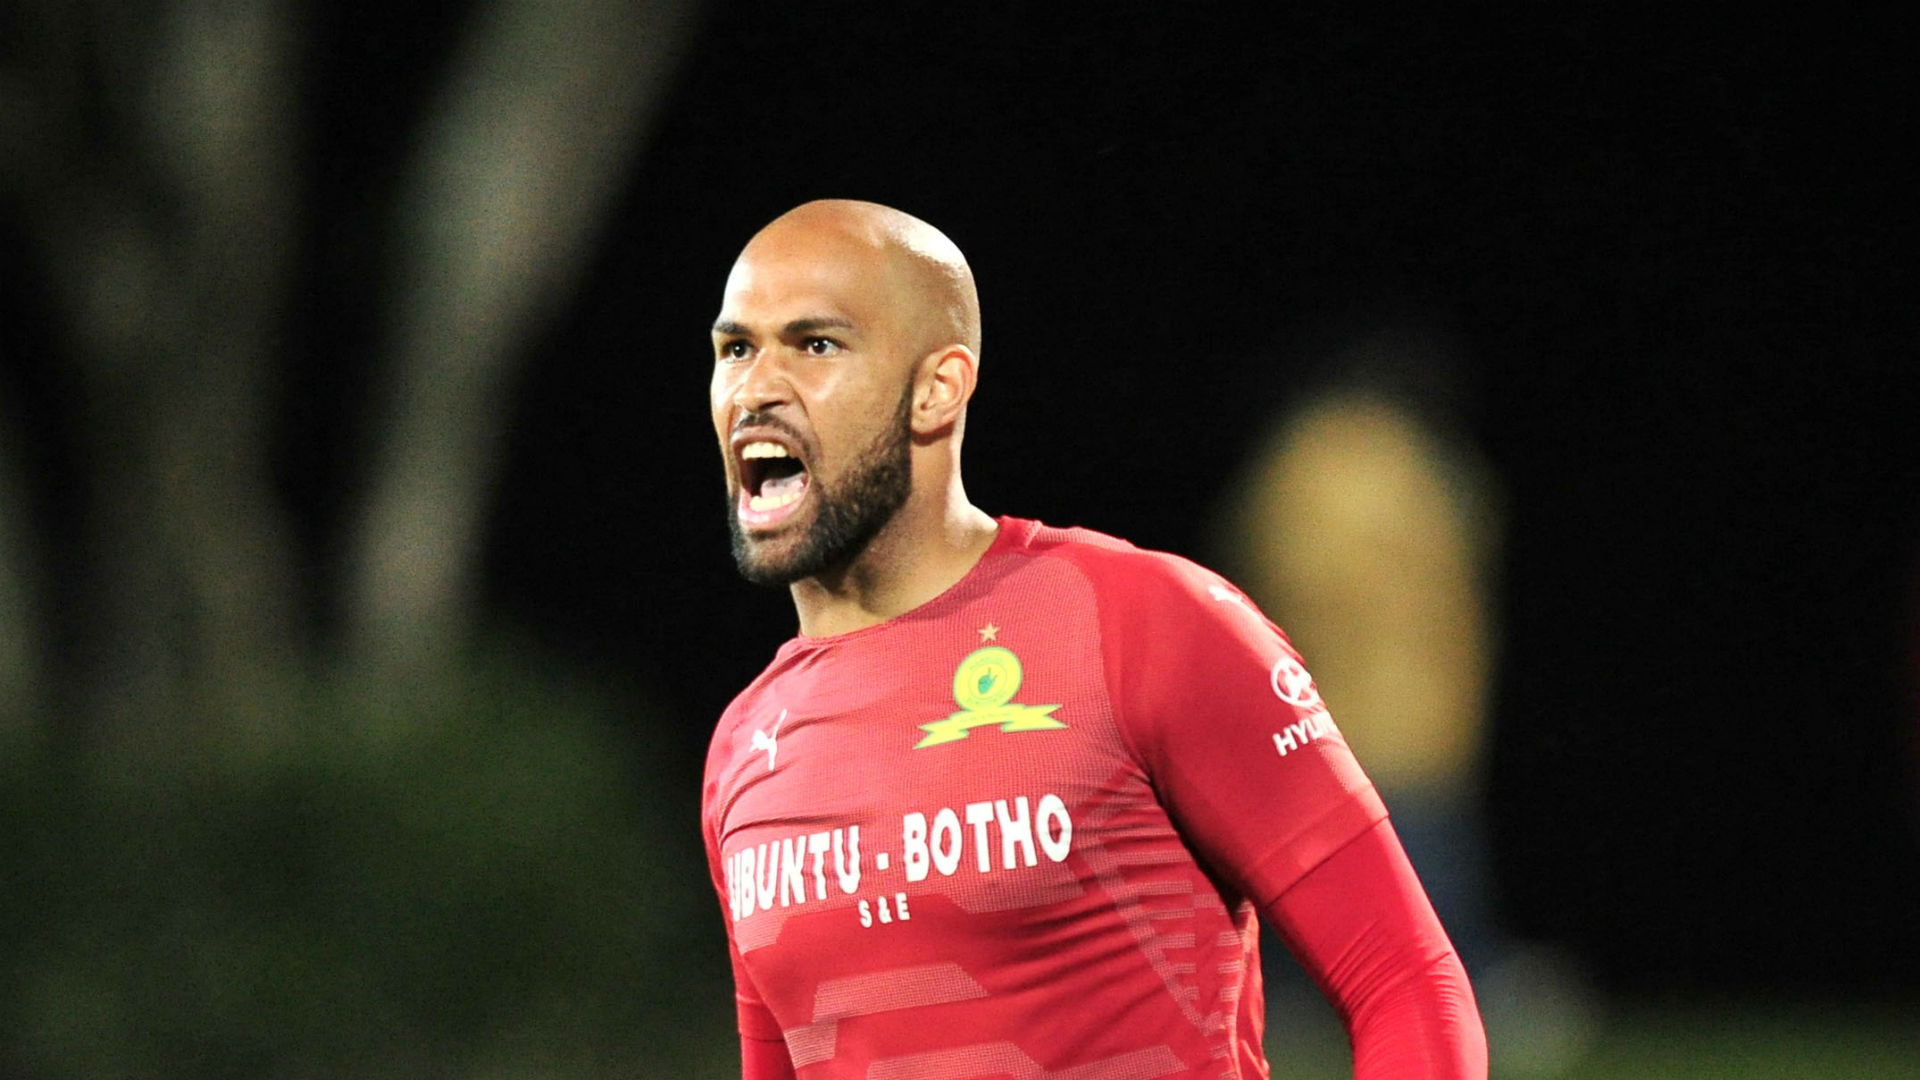 KAIZER CHIEFS are reportedly planning a January swoop on Mamelodi Sundowns for former keeper Reyaad Pieterse